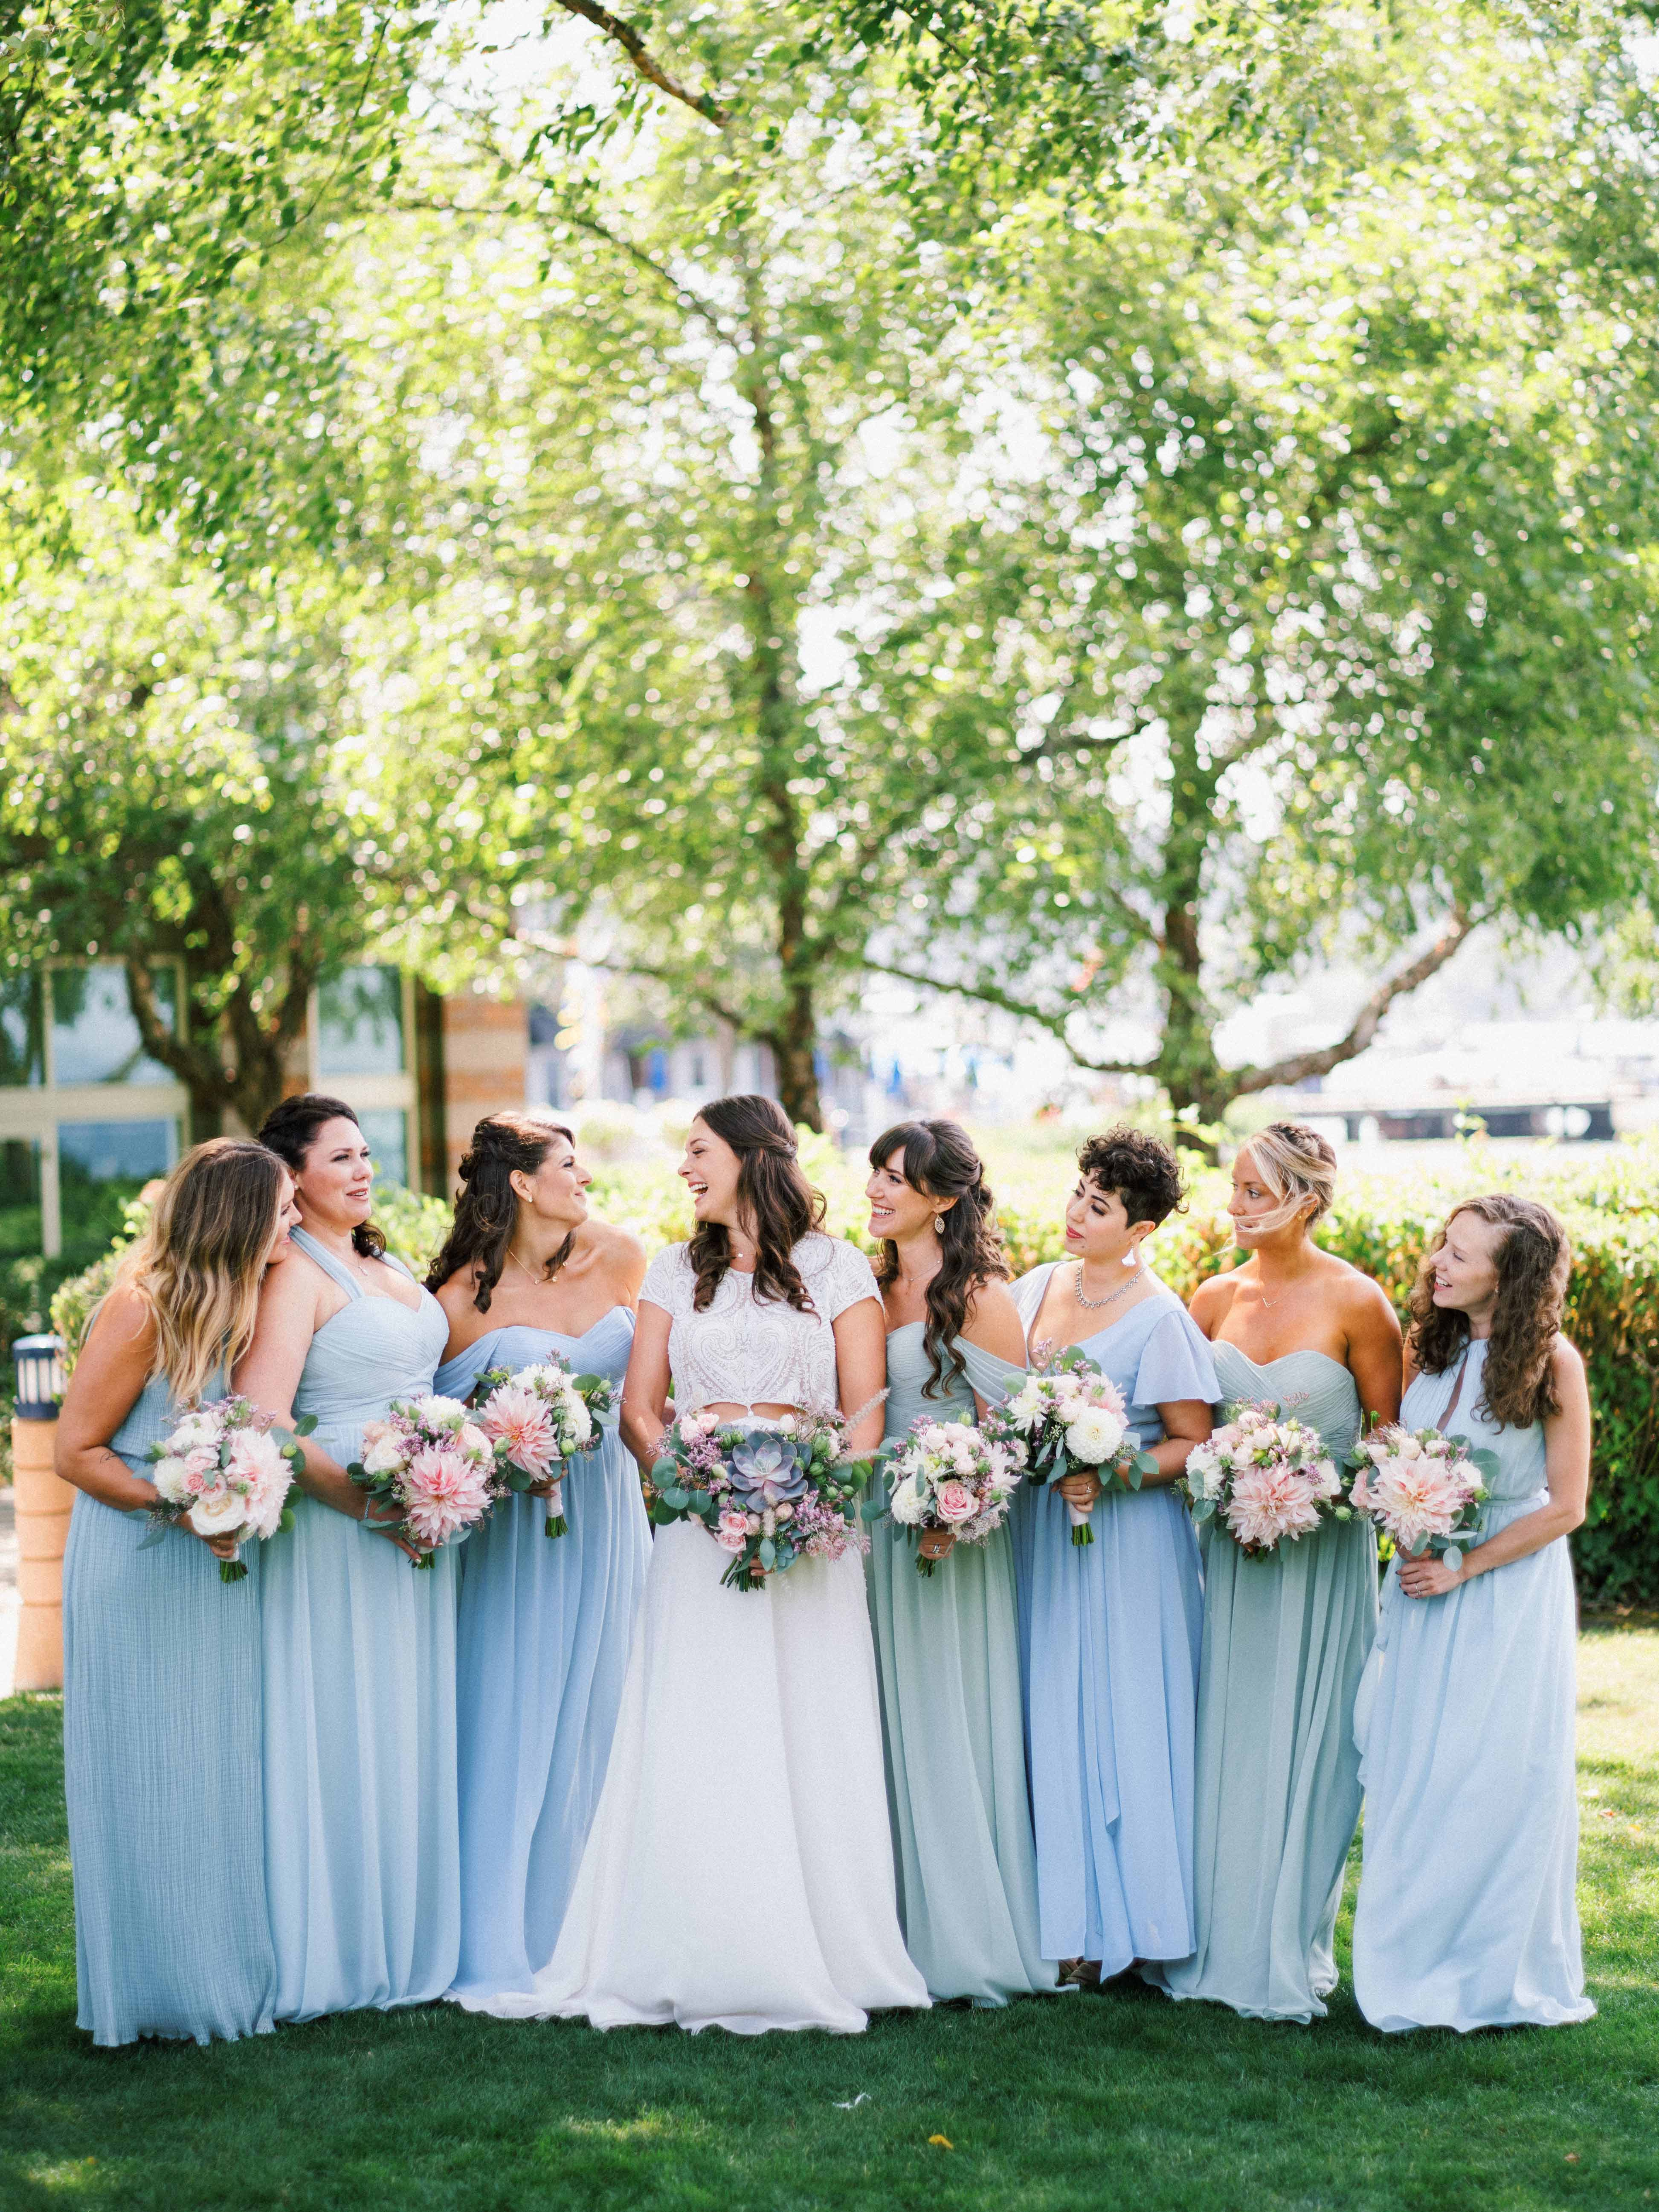 A bridal party in the summer - Woodmark Hotel Wedding by Flora Nova Design Seattle